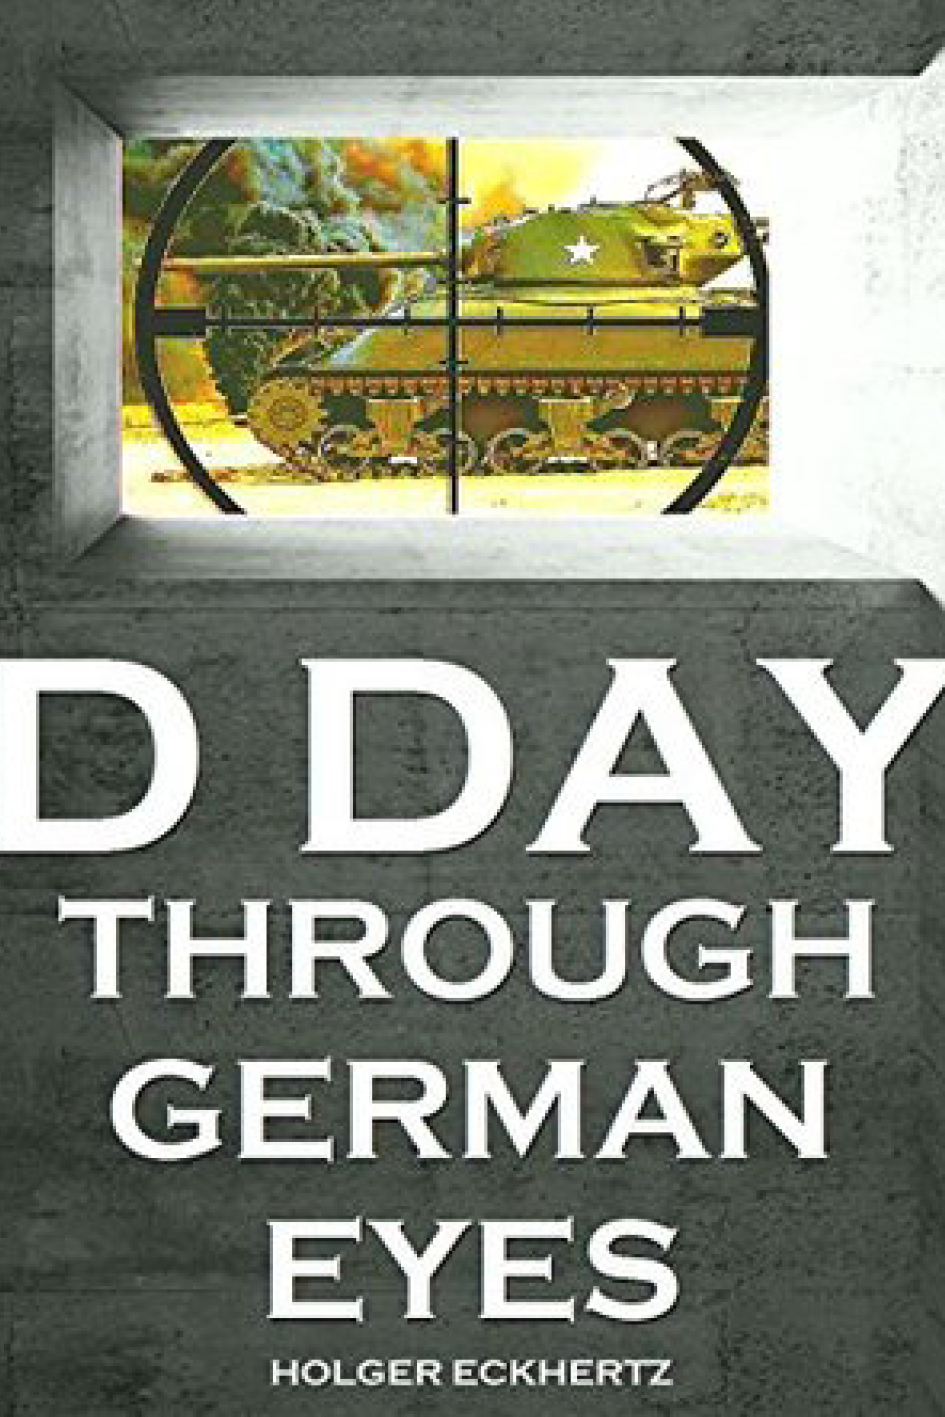 "D DAY Through German Eyes - The Hidden Story of June 6th 1944   ,   Holger Eckhertz   "" One of the most fascinating books on D Day ever to be published. As we remember the fallen from the Allied forces, this reminds us of what happened on the other side on D Day. Not for the faint-hearted, often brutal in its descriptions of the invasion, but it makes for compelling reading, particularly on the subject of Anglo-American psychology and attitudes .""   Brendan Bruce,  Marketing and Communications Director"